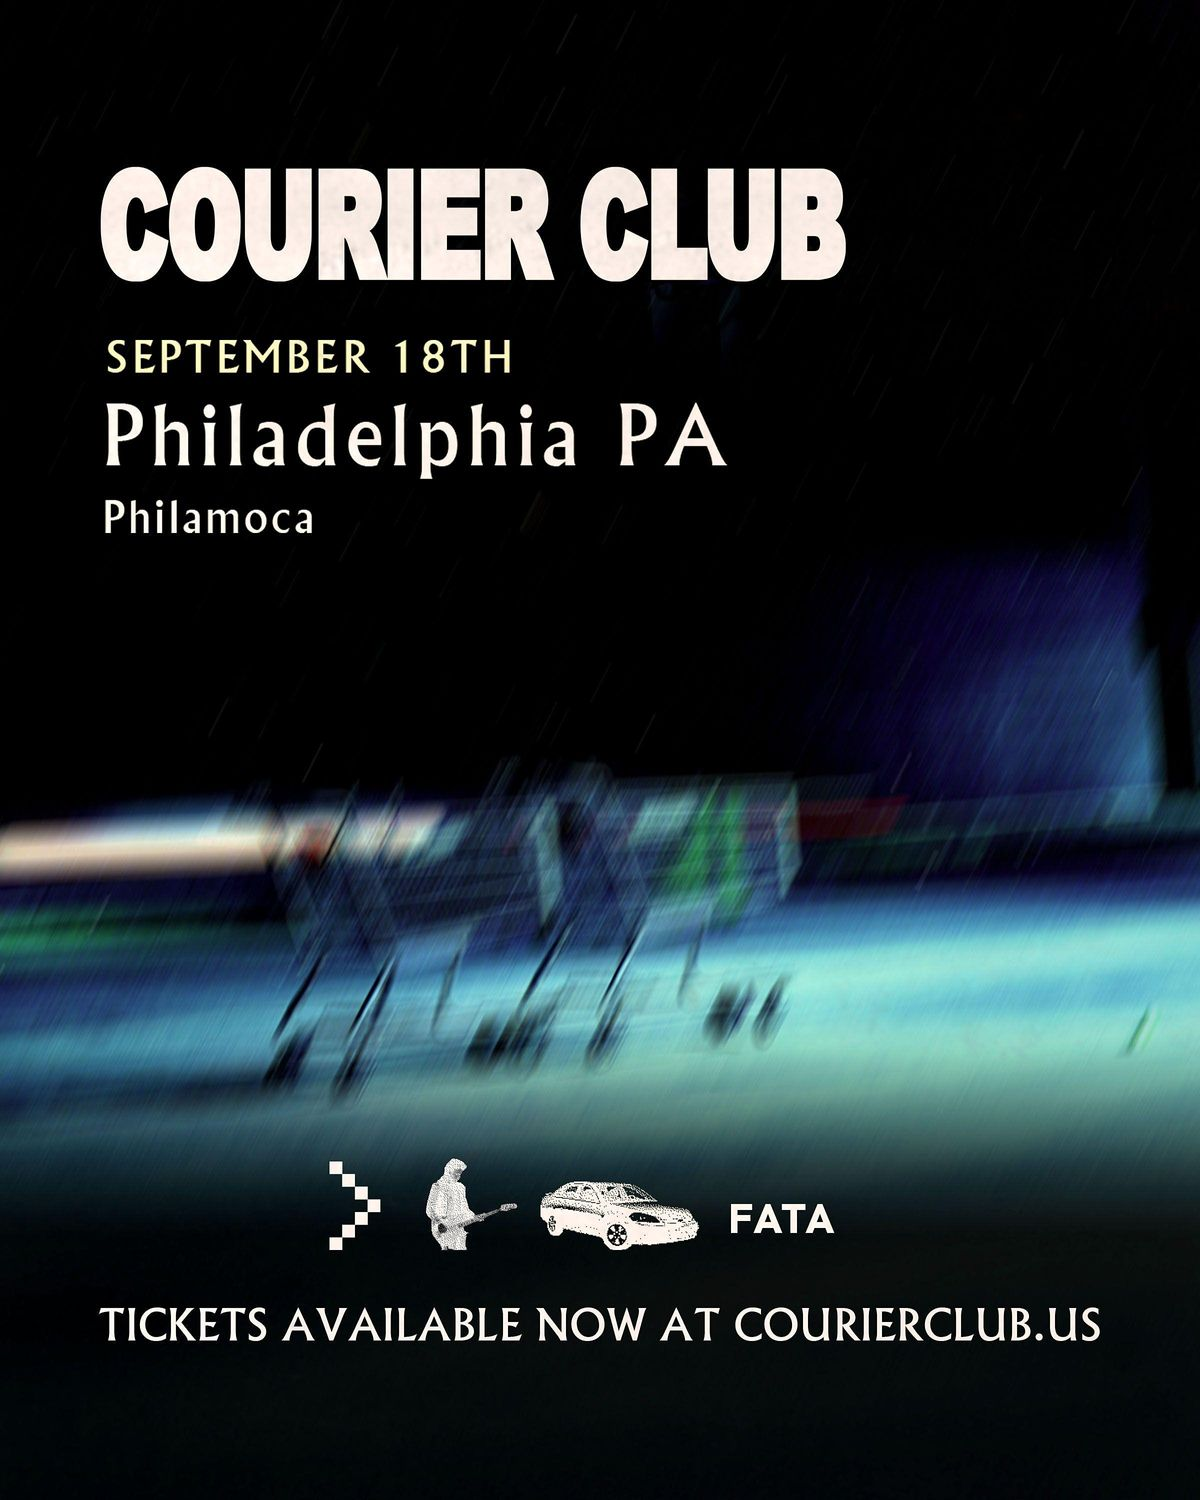 Courier Club